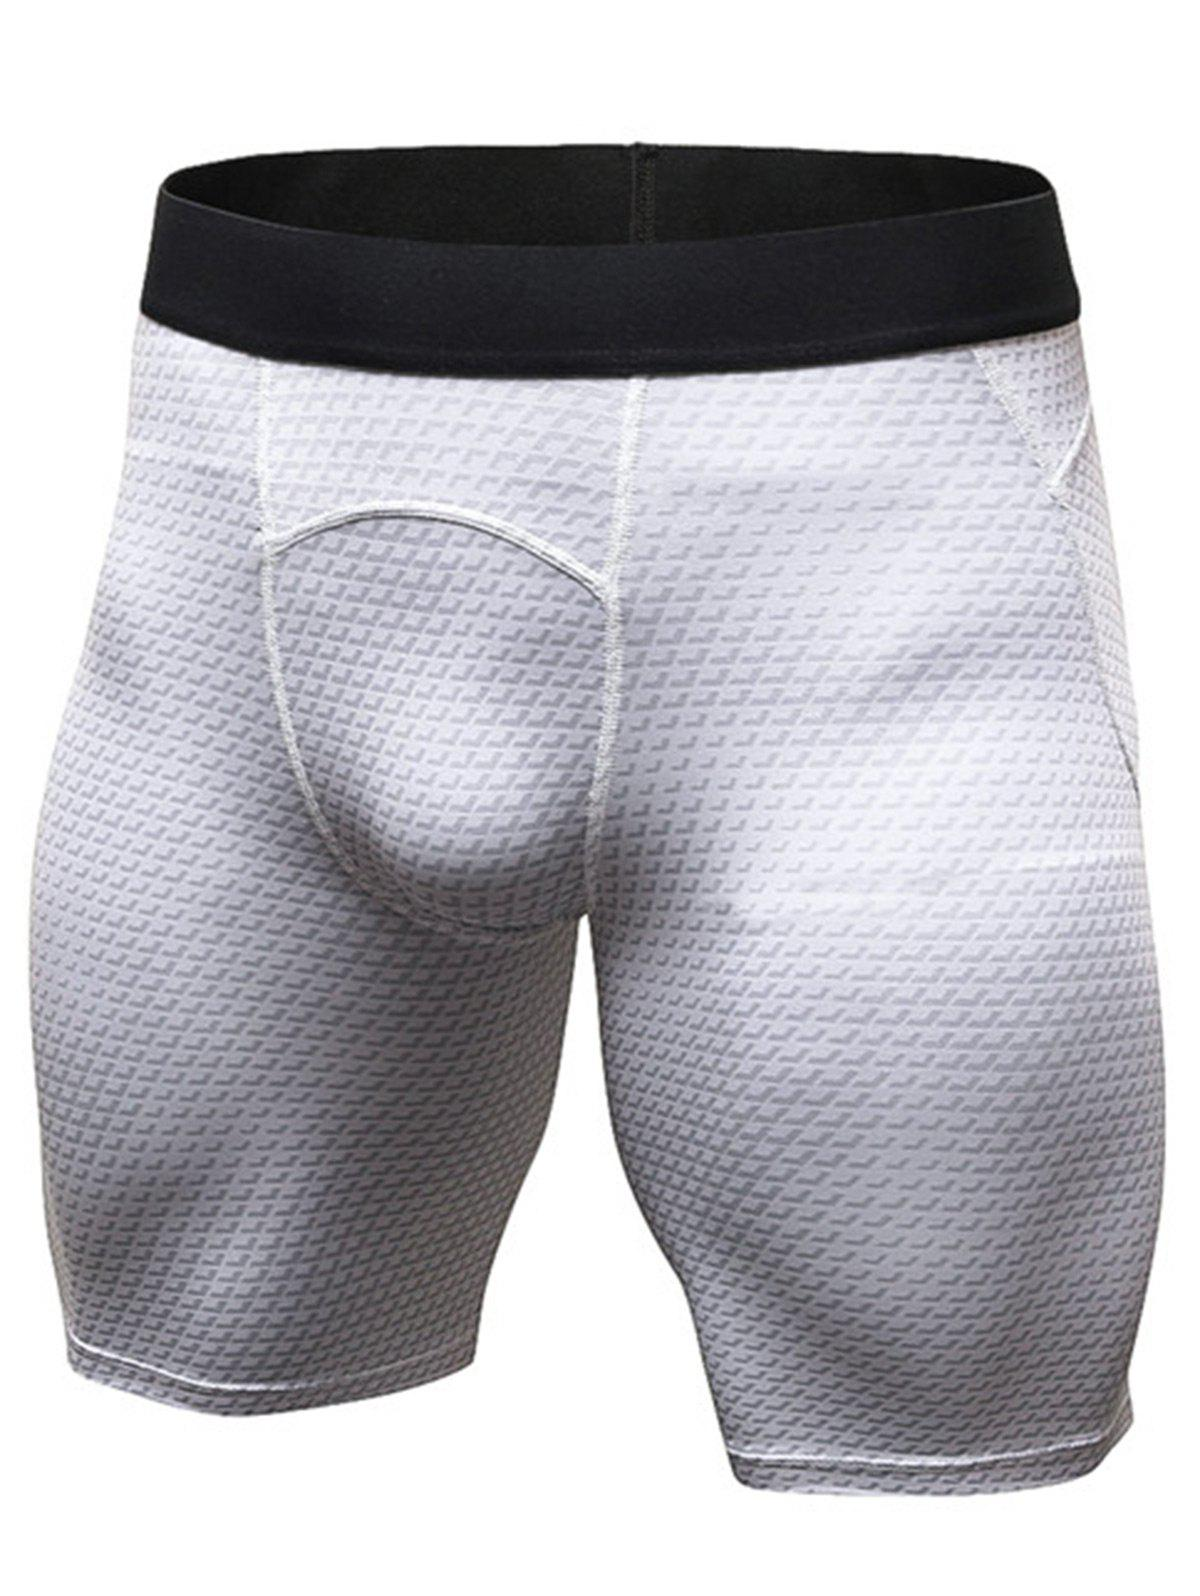 3D Geometric Print Fitted Quick Dry Gym Shorts - WHITE M